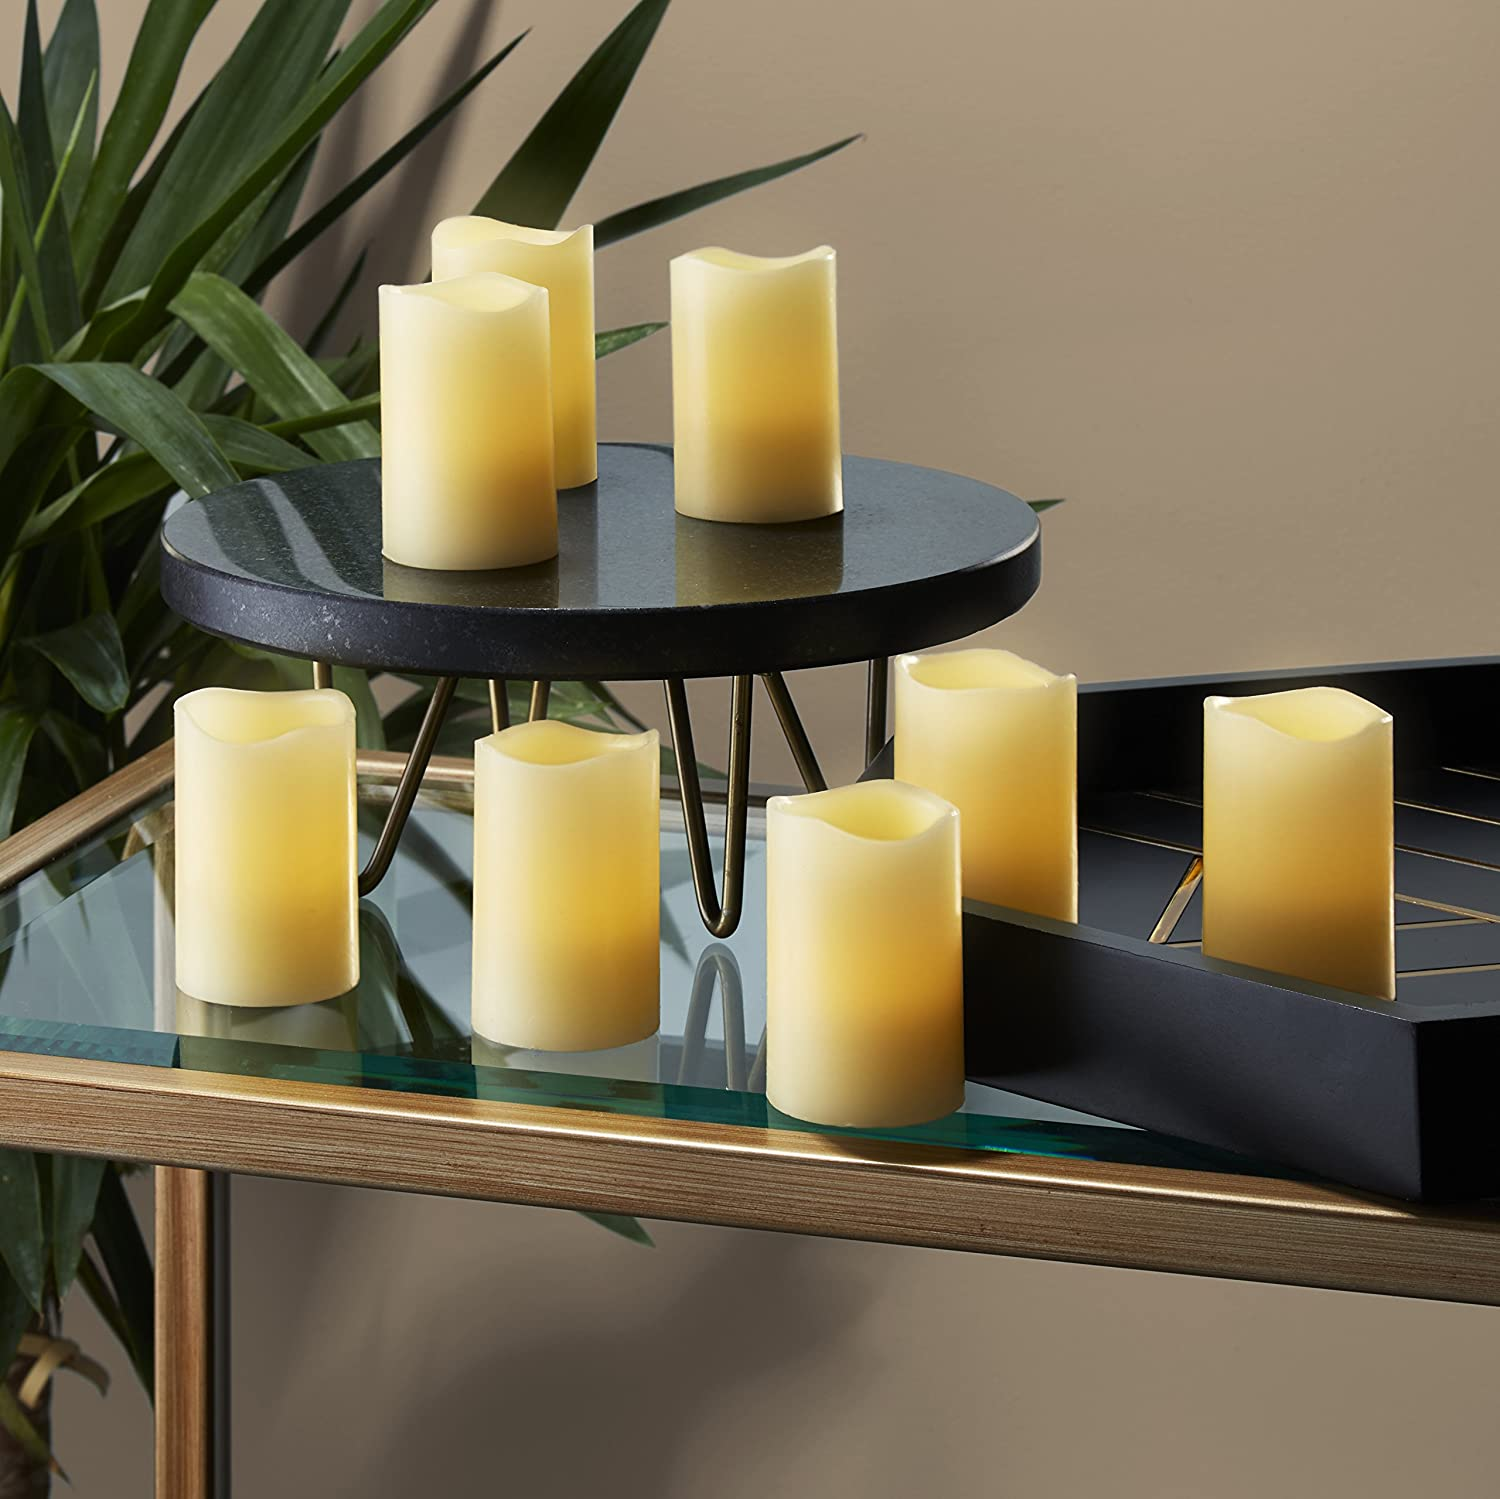 Melted Edge Batteries Included LampLust LC003170 Mini Wax Candles 8 Ivory 3 Flameless Votives with Warm White LEDs